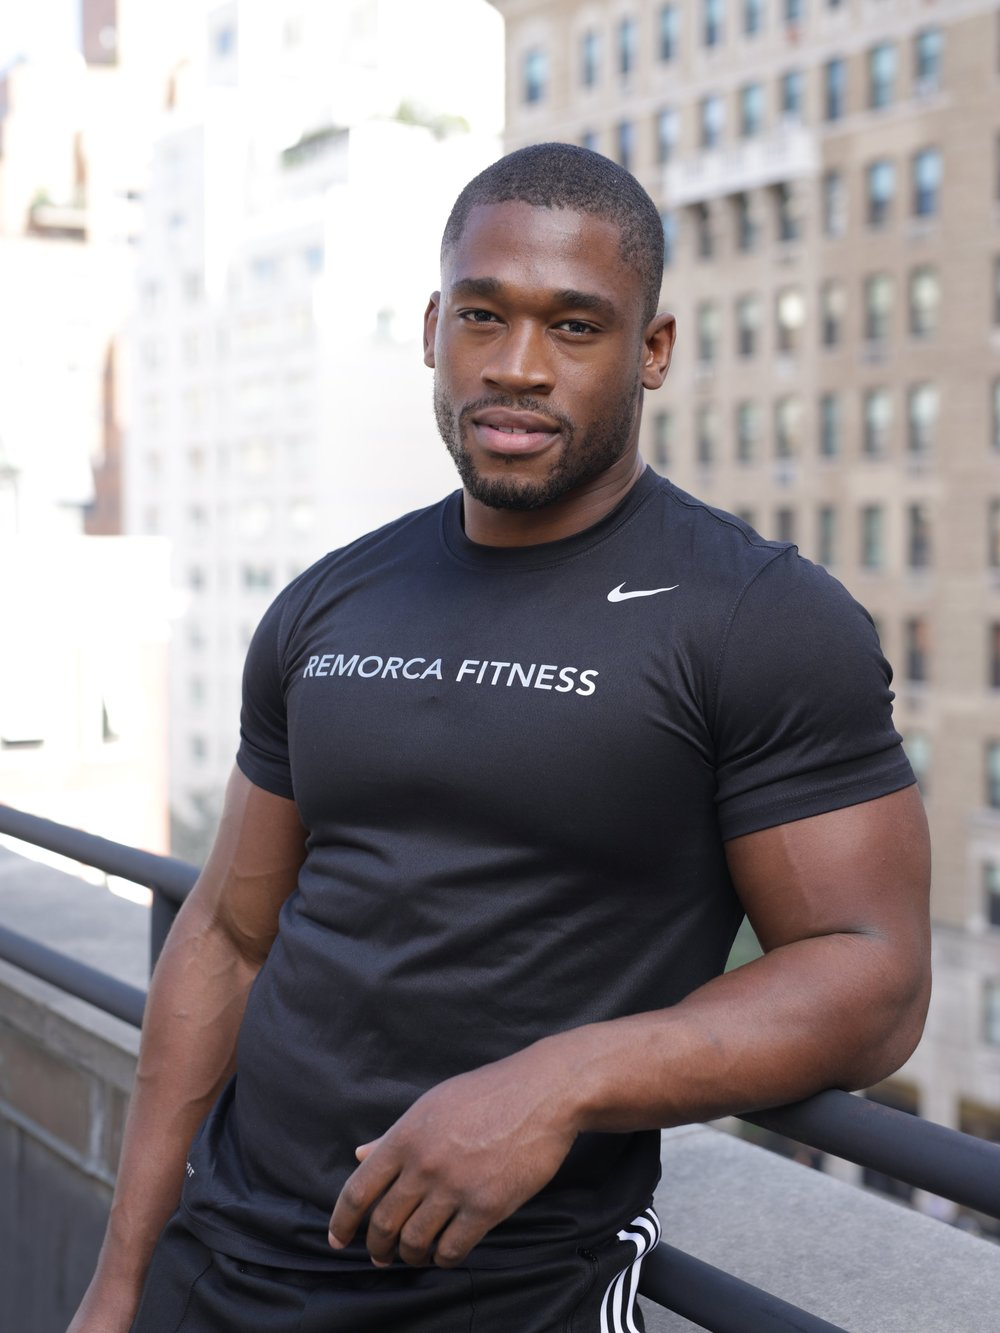 PIERRE - PERSONAL TRAINER AT REMORCA FITNESS GRAMERCYCERTIFICATIONS:EDUCATION:SPECIALTY/EXPERTISE:FITNESS HOBBIES:NON FITNESS THING ABOUT ME